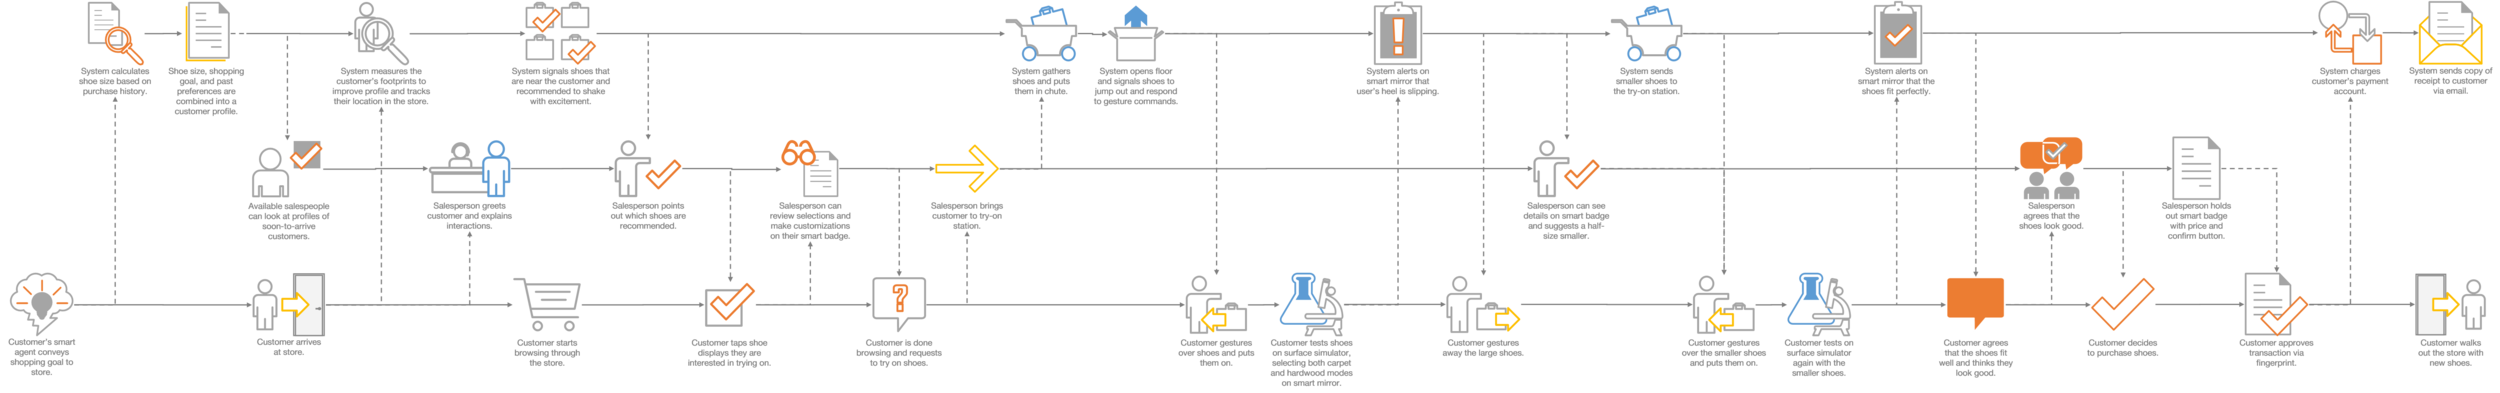 service blueprint (click to enlarge)